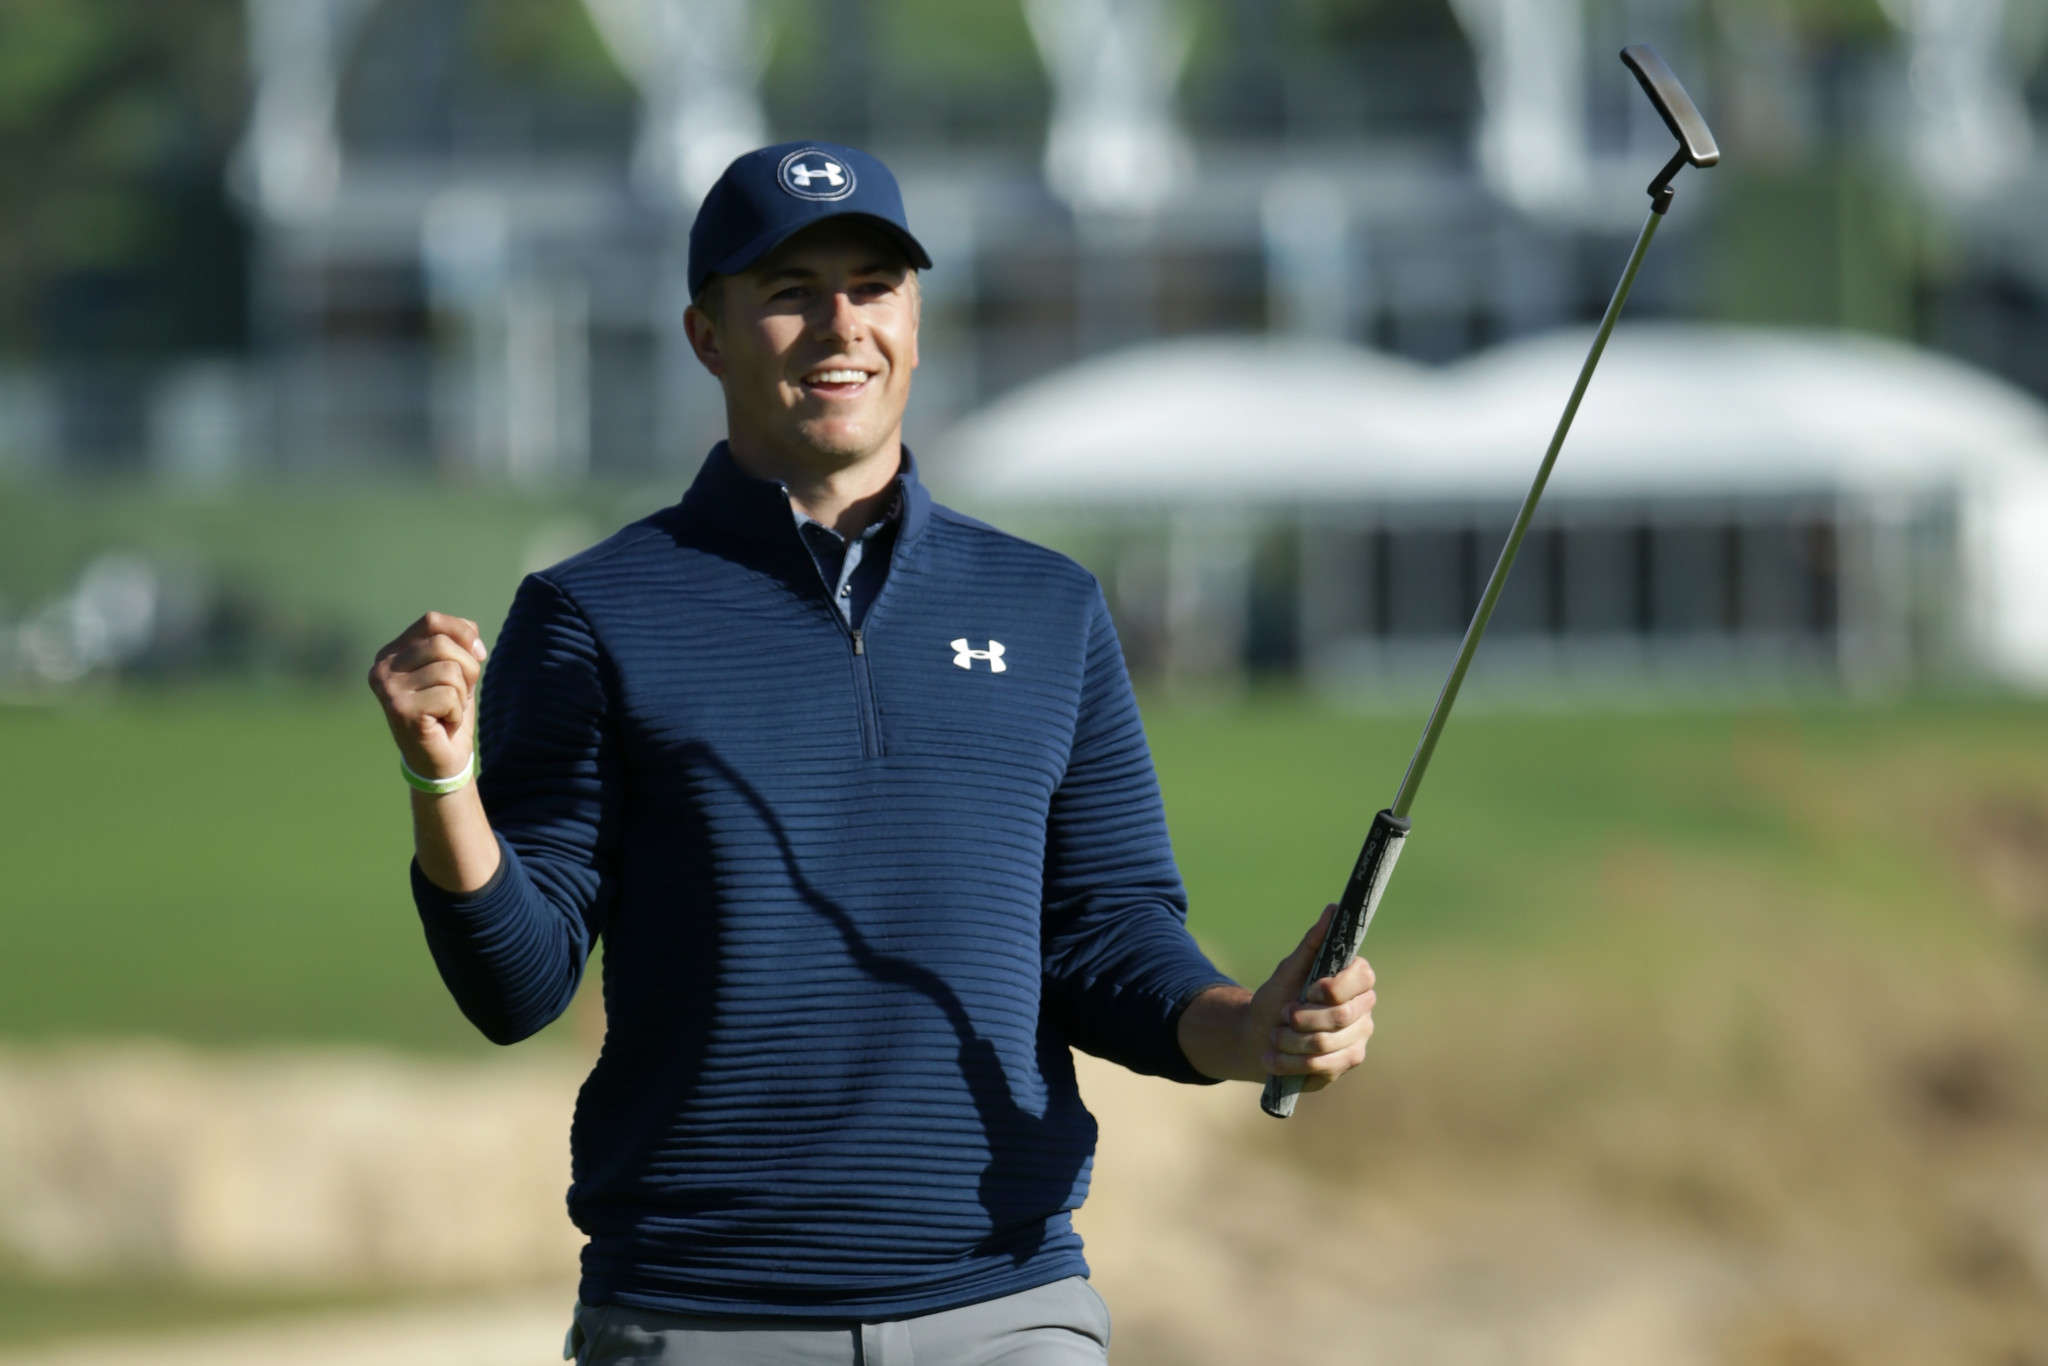 Jordan Spieth Breezes To Big Win At Pebble Beach For 9th